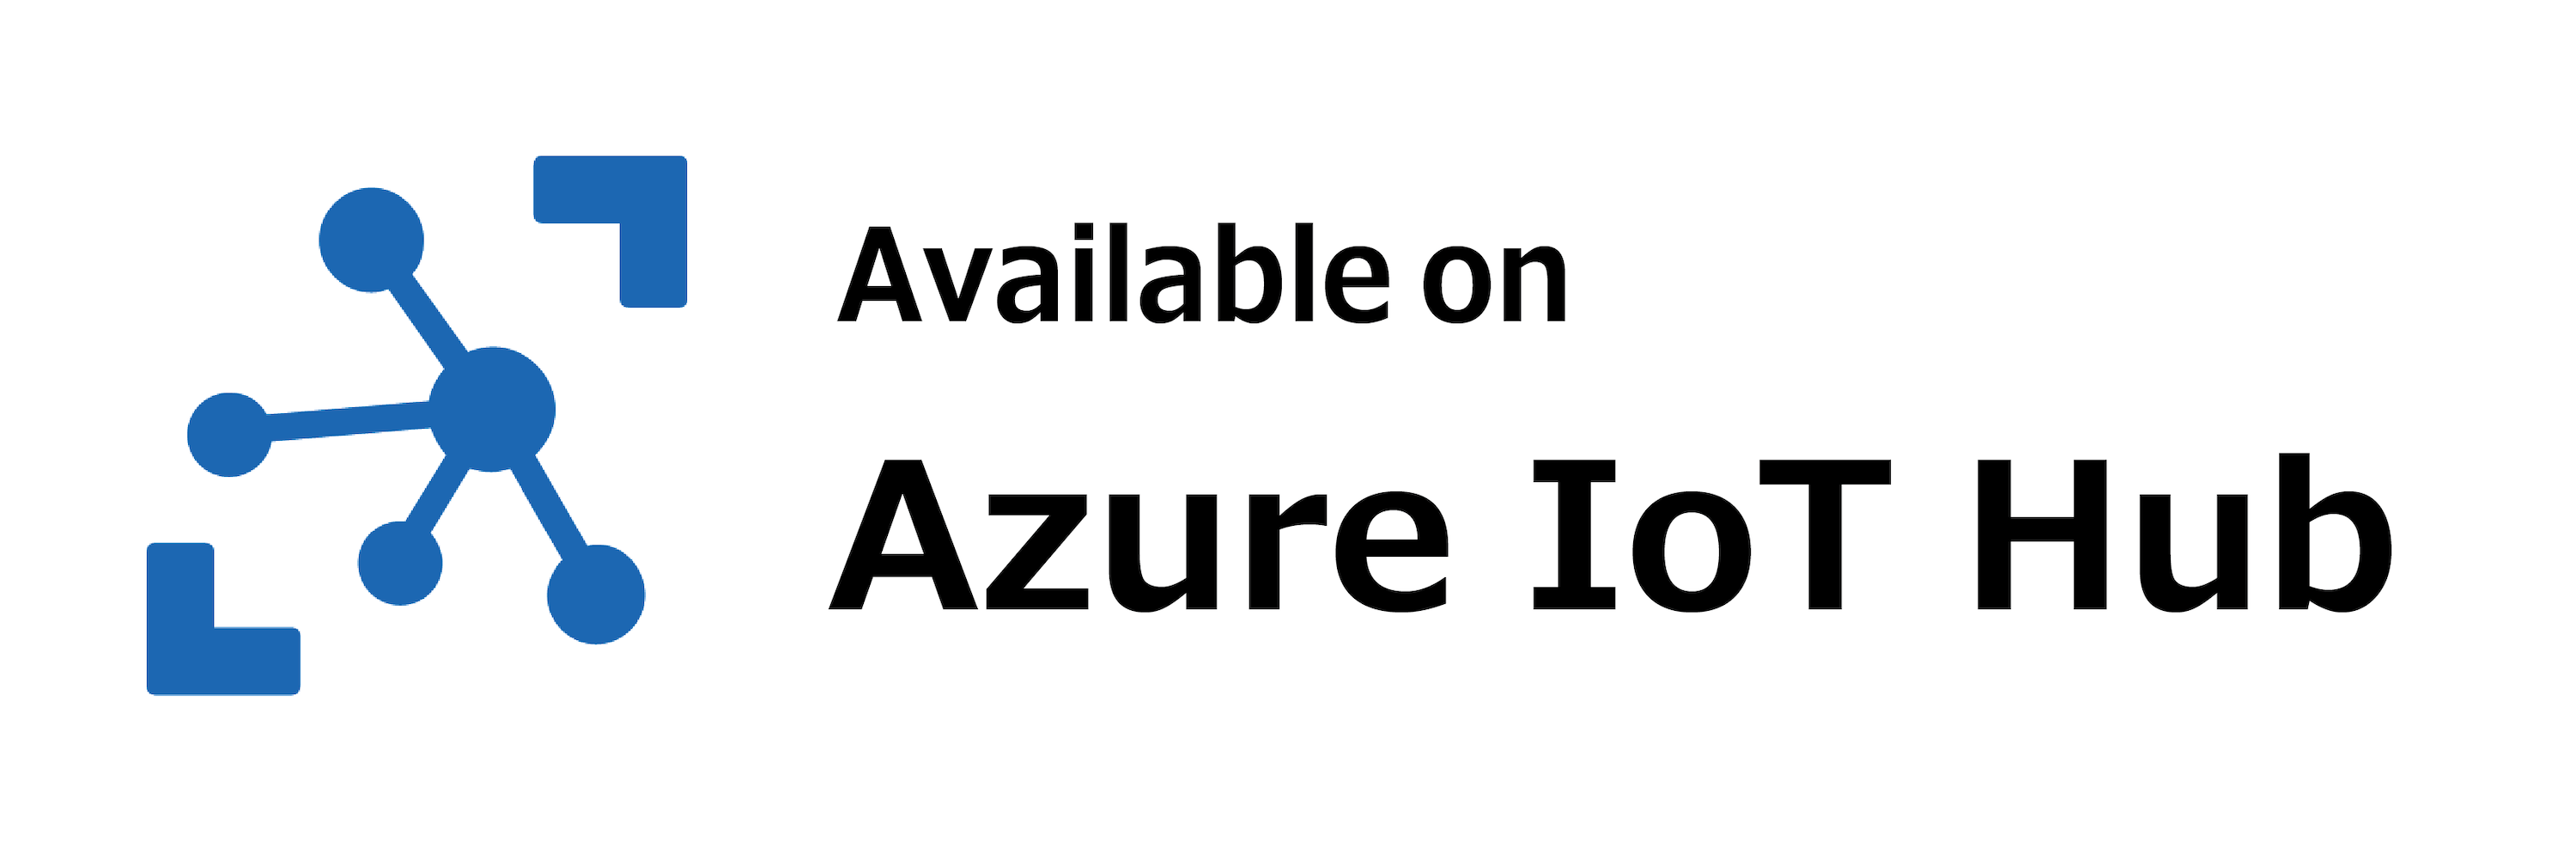 available on Azure IoT Hub